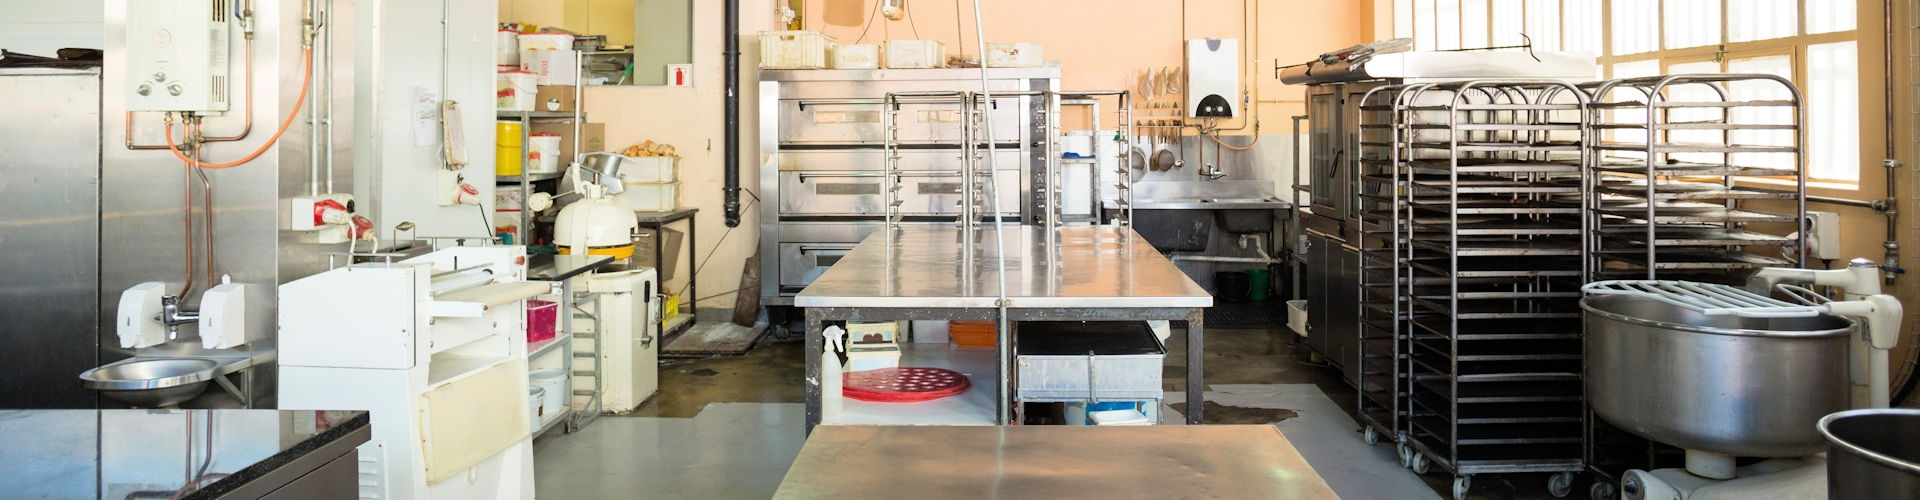 Sensational Mb Food Equipment Your Best Supplier Of Used Food Equipment Download Free Architecture Designs Licukmadebymaigaardcom